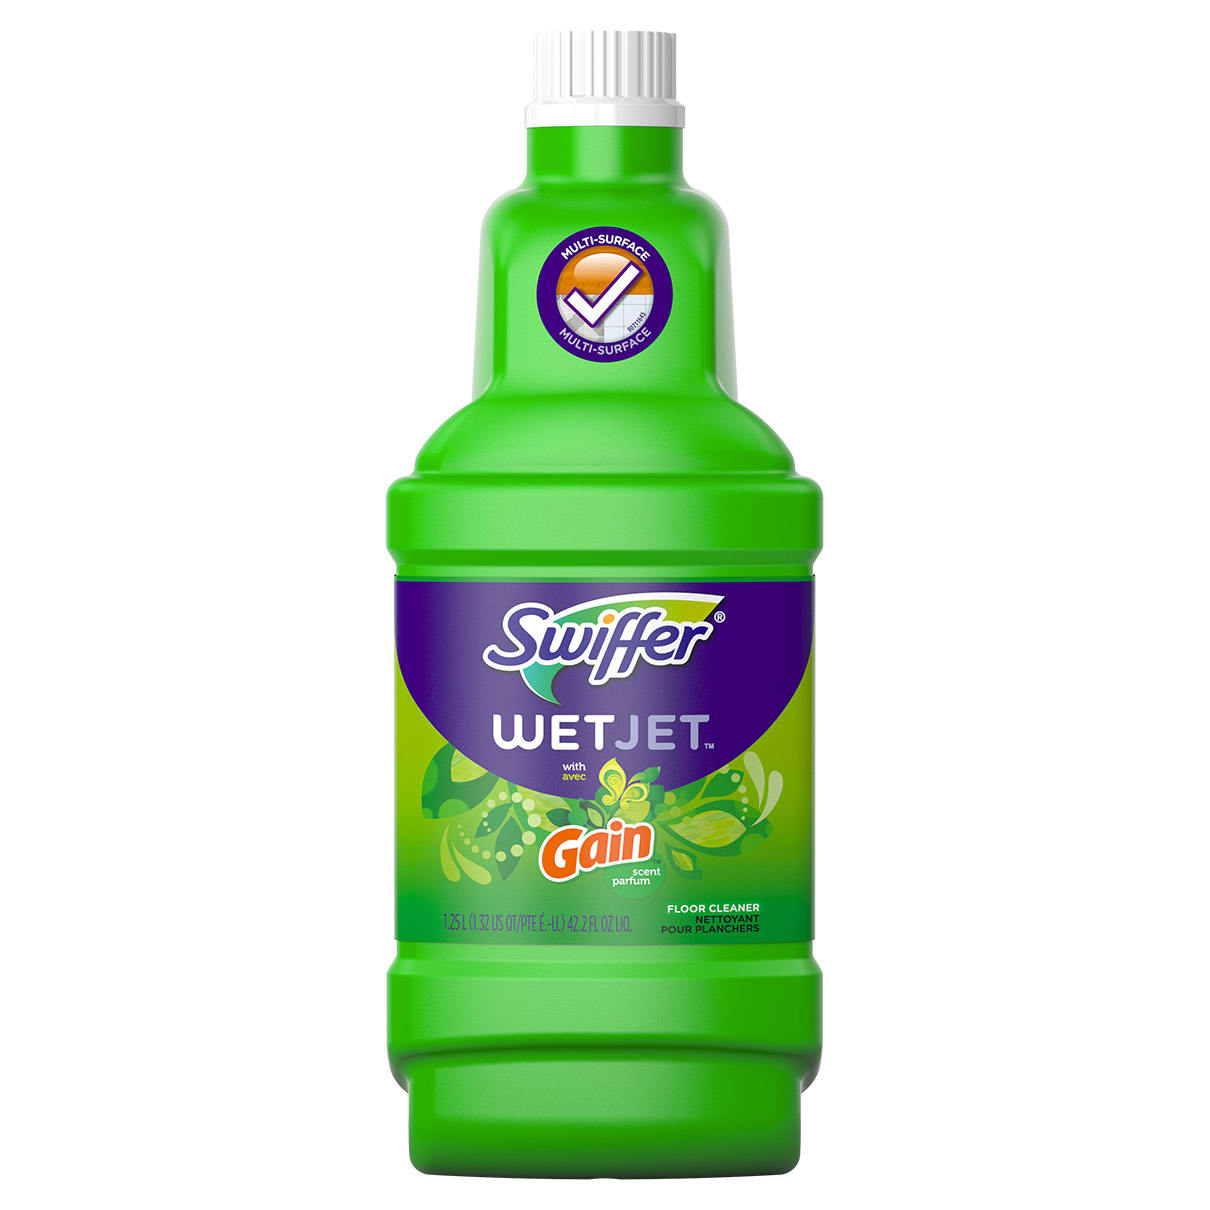 Swiffer® WetJet® Multi-Purpose Cleaner Solution Refill - Gain Original Scent